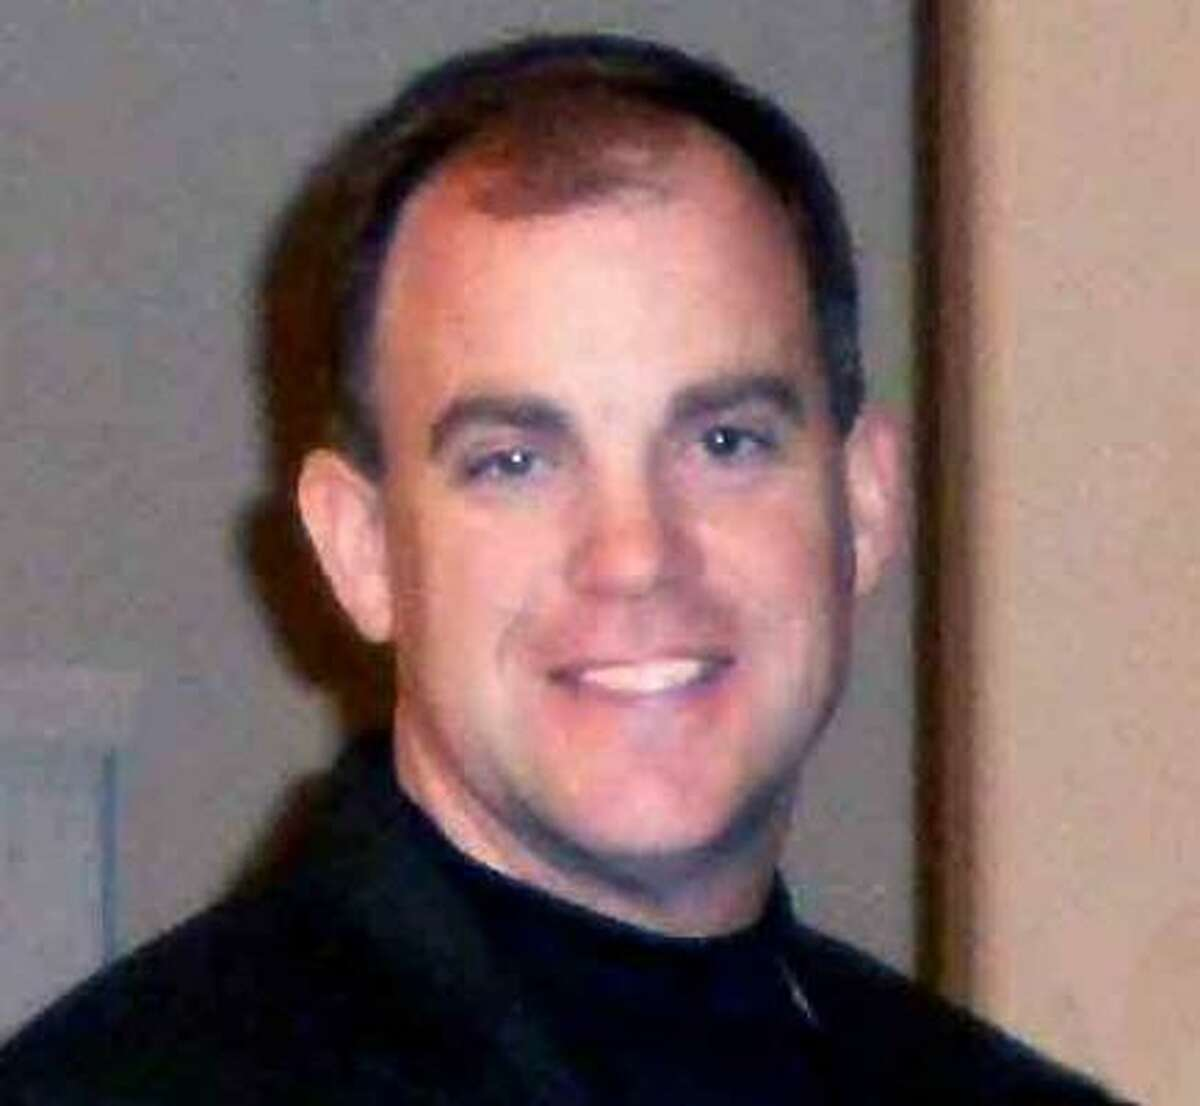 Dec. 7, 2008 Houston police officer Timothy Scott Abernethy (pictured), 43, was trying to pull a man over when the suspect drove into an apartment complex in Houston and attempted to flee. Inside the complex, the suspect ambushed Abernethy, who had more than 10 years of law enforcement experience. The suspect fire several rounds from a .40 caliber semiautomatic handgun, striking Abernethy once in the throat and another time in the head. The officer died from his wounds.